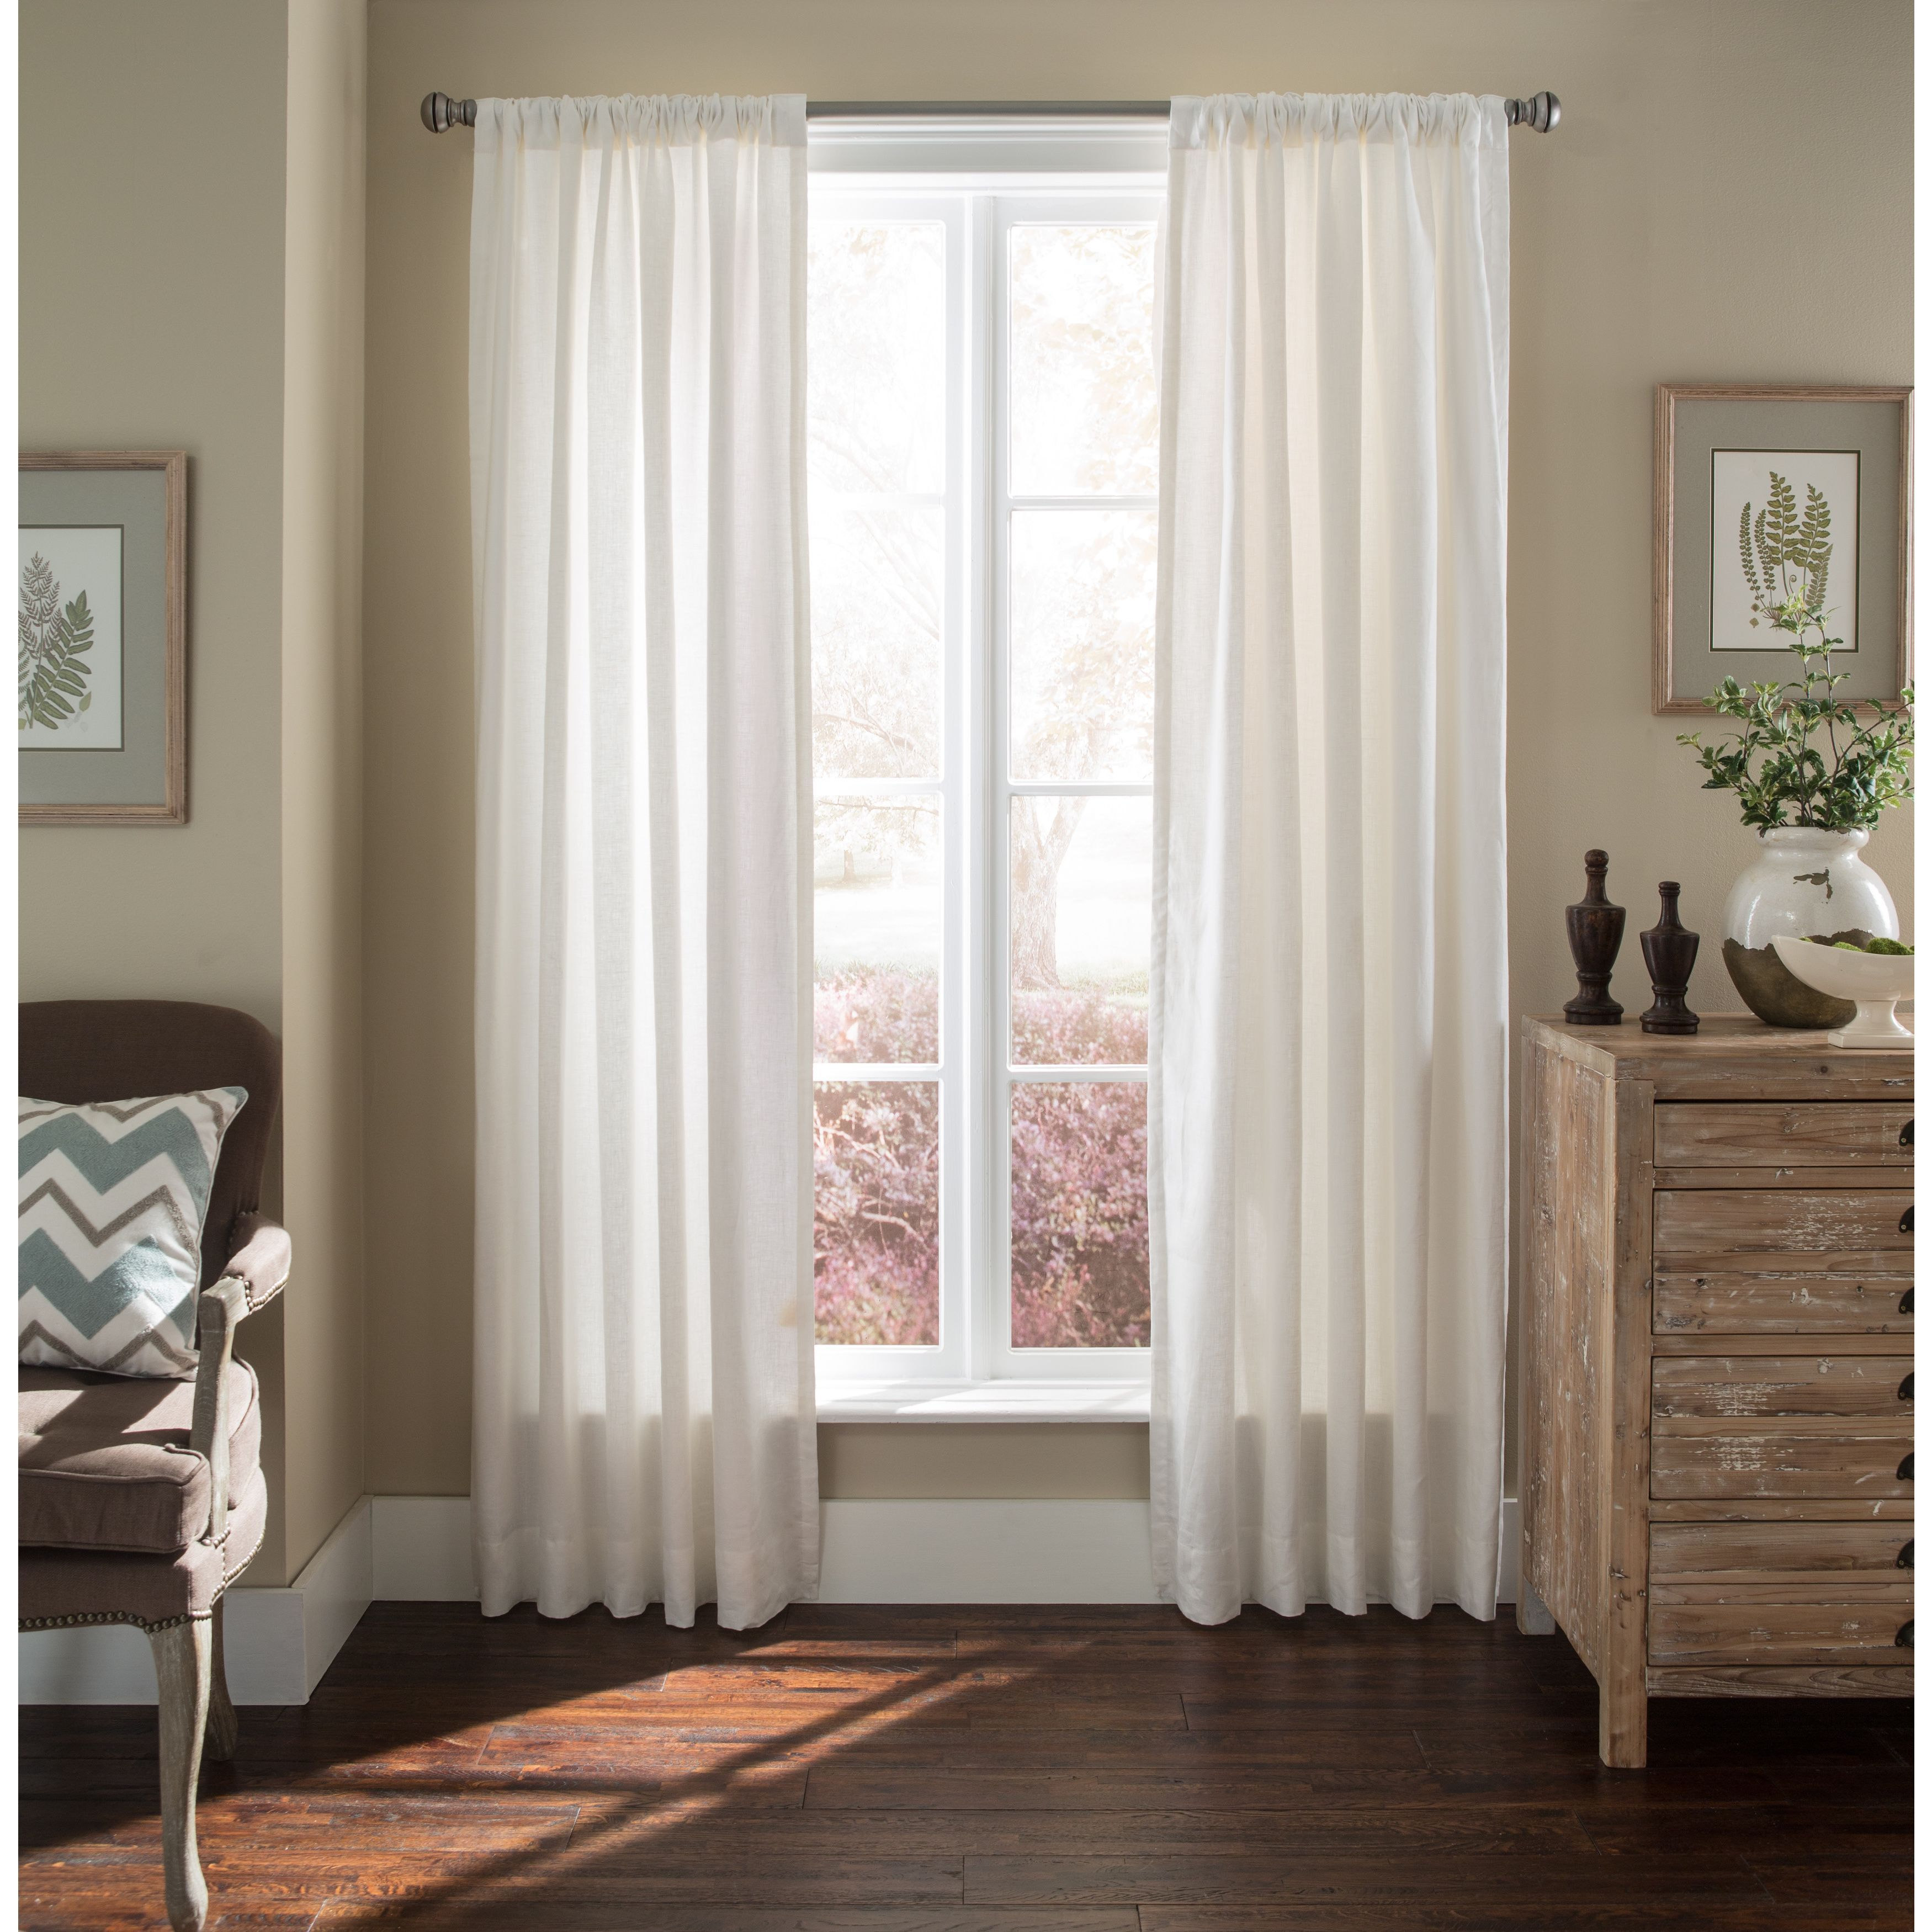 Luxury window coverings  this luxurious linen curtain panel will add stunning and simple